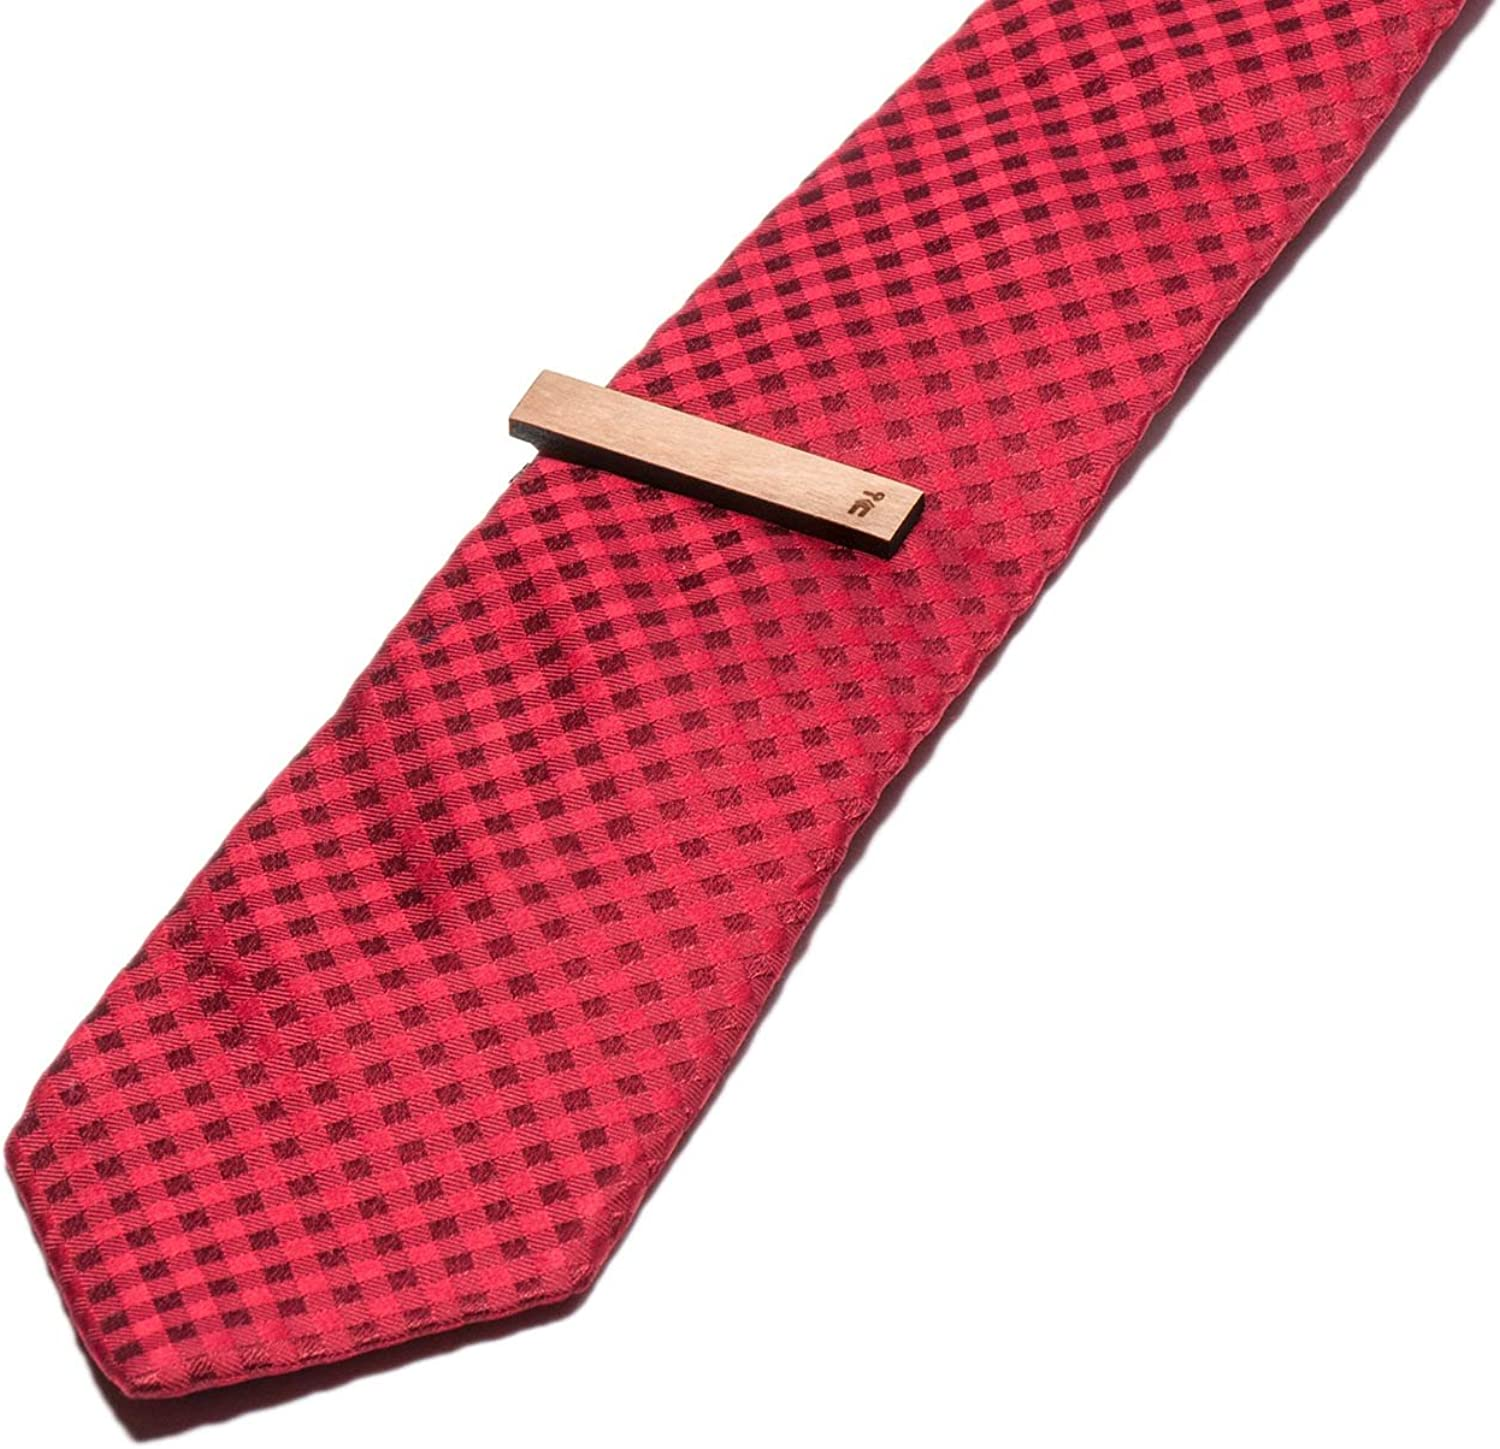 Wooden Accessories Company Wooden Tie Clips with Laser Engraved Key and House Design Cherry Wood Tie Bar Engraved in The USA